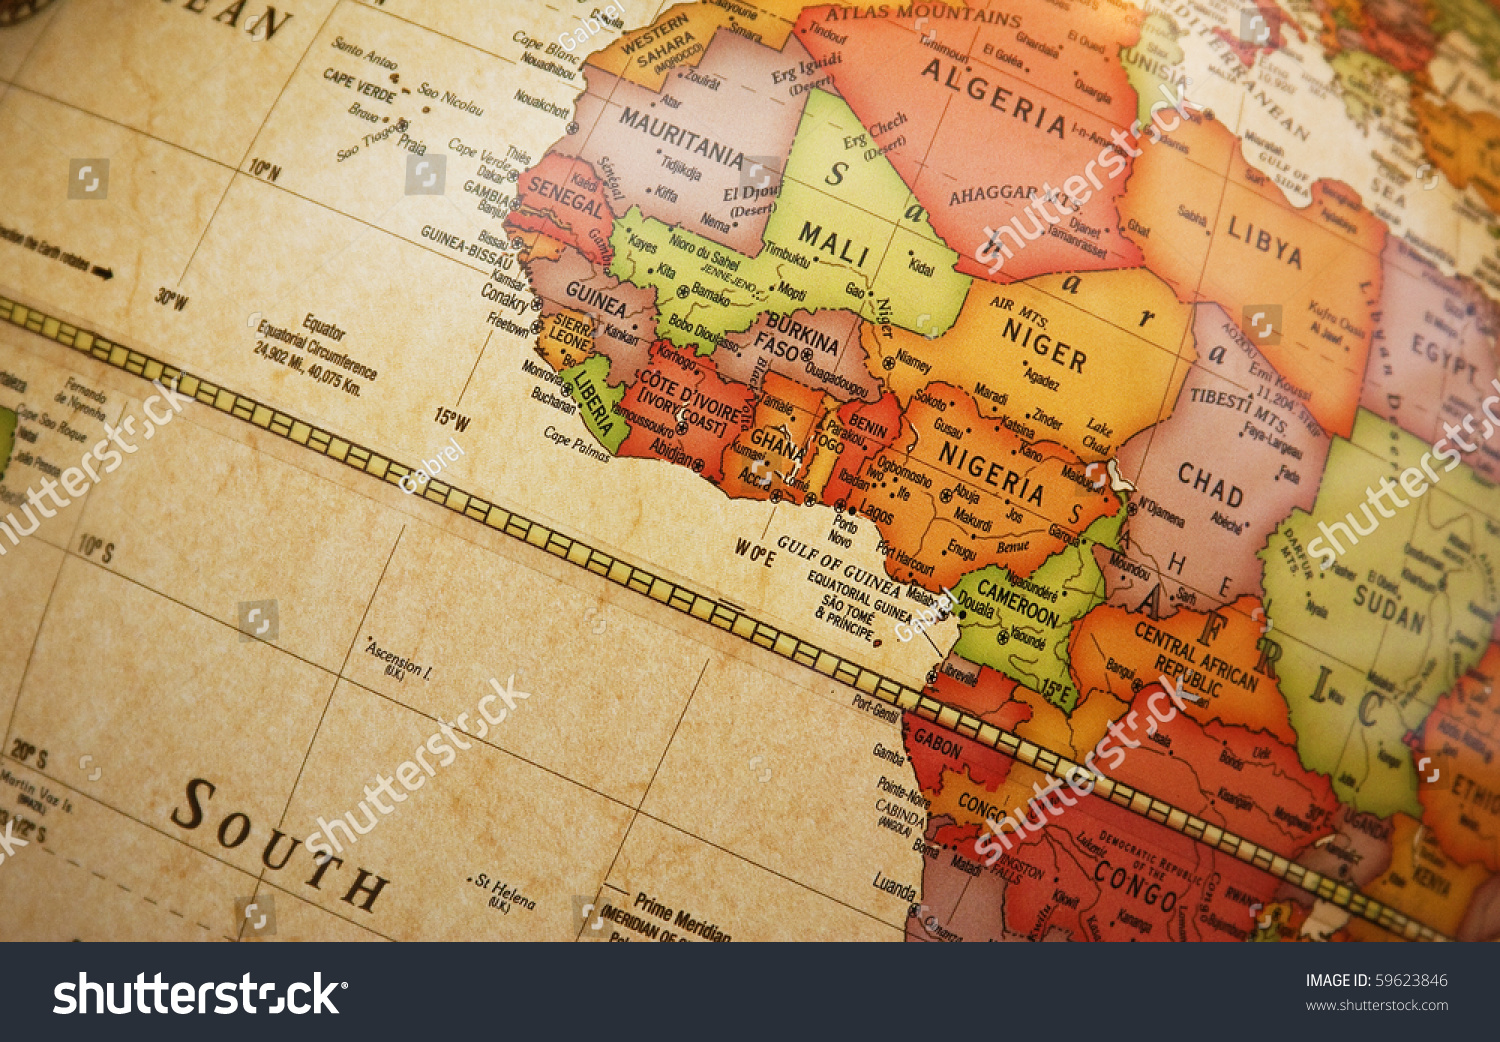 Close World Map Detail African Continent Photo 59623846 – Map of the World in Detail